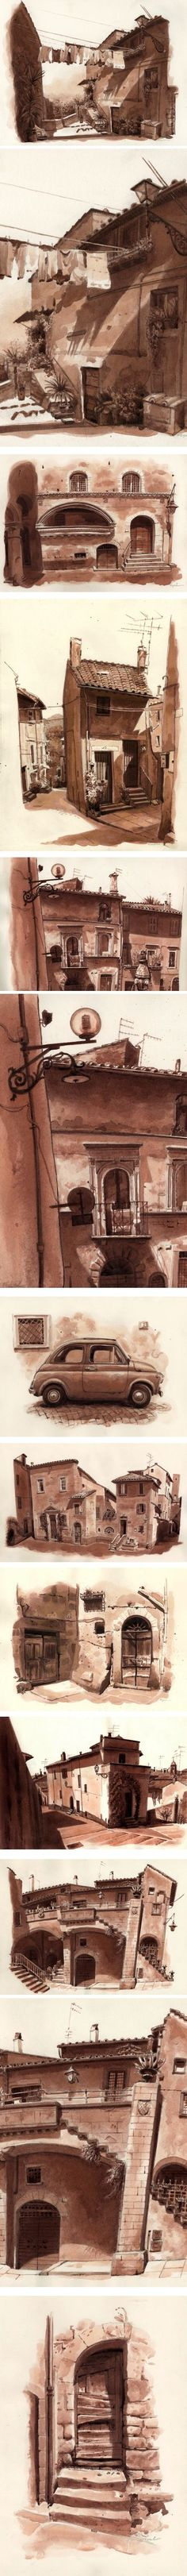 Fred Lynch, Drawings From the Road to Rome